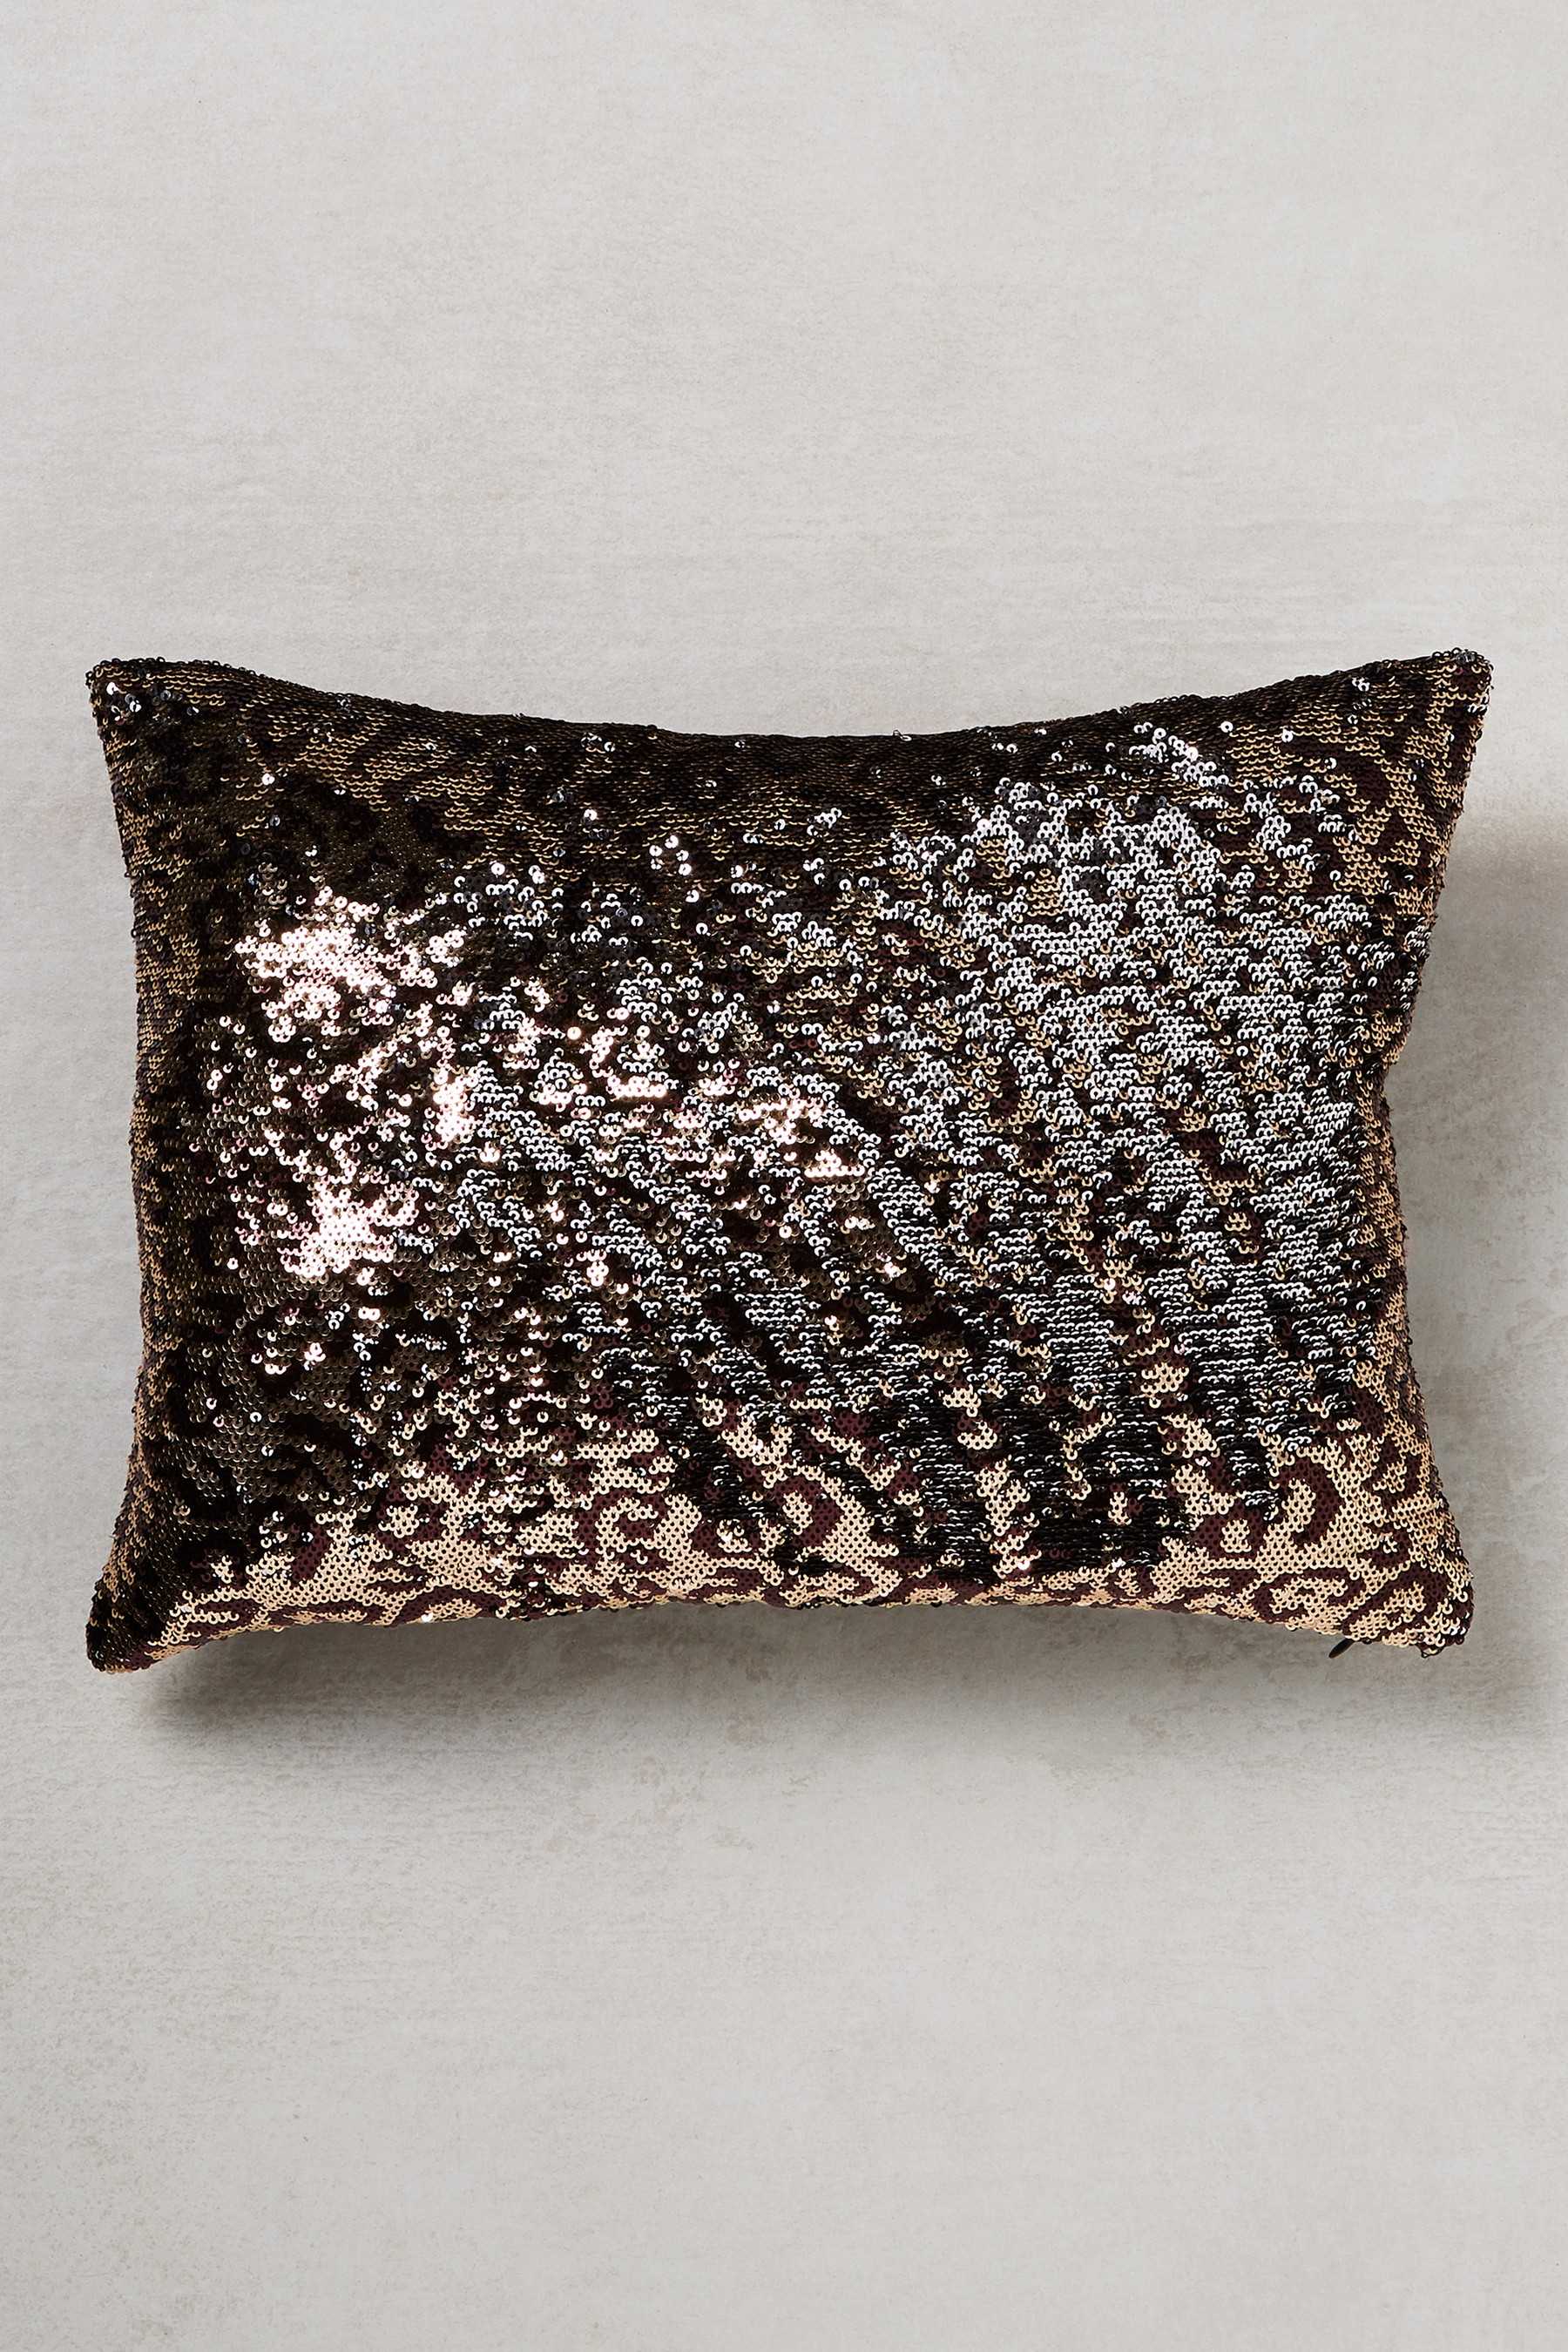 Next sequin cushions